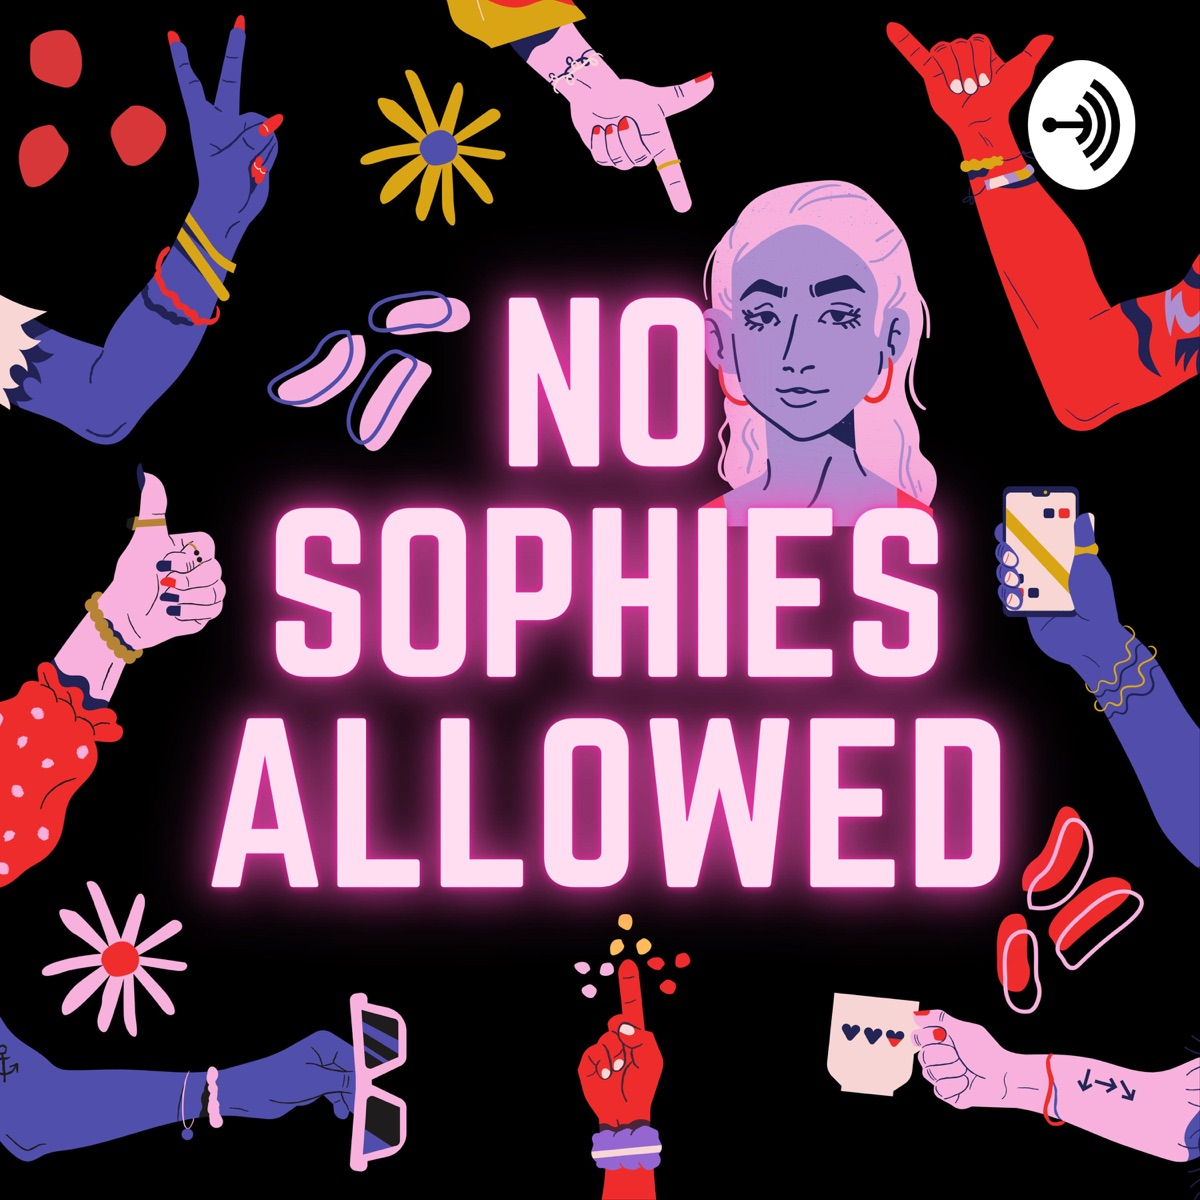 no sophies allowed